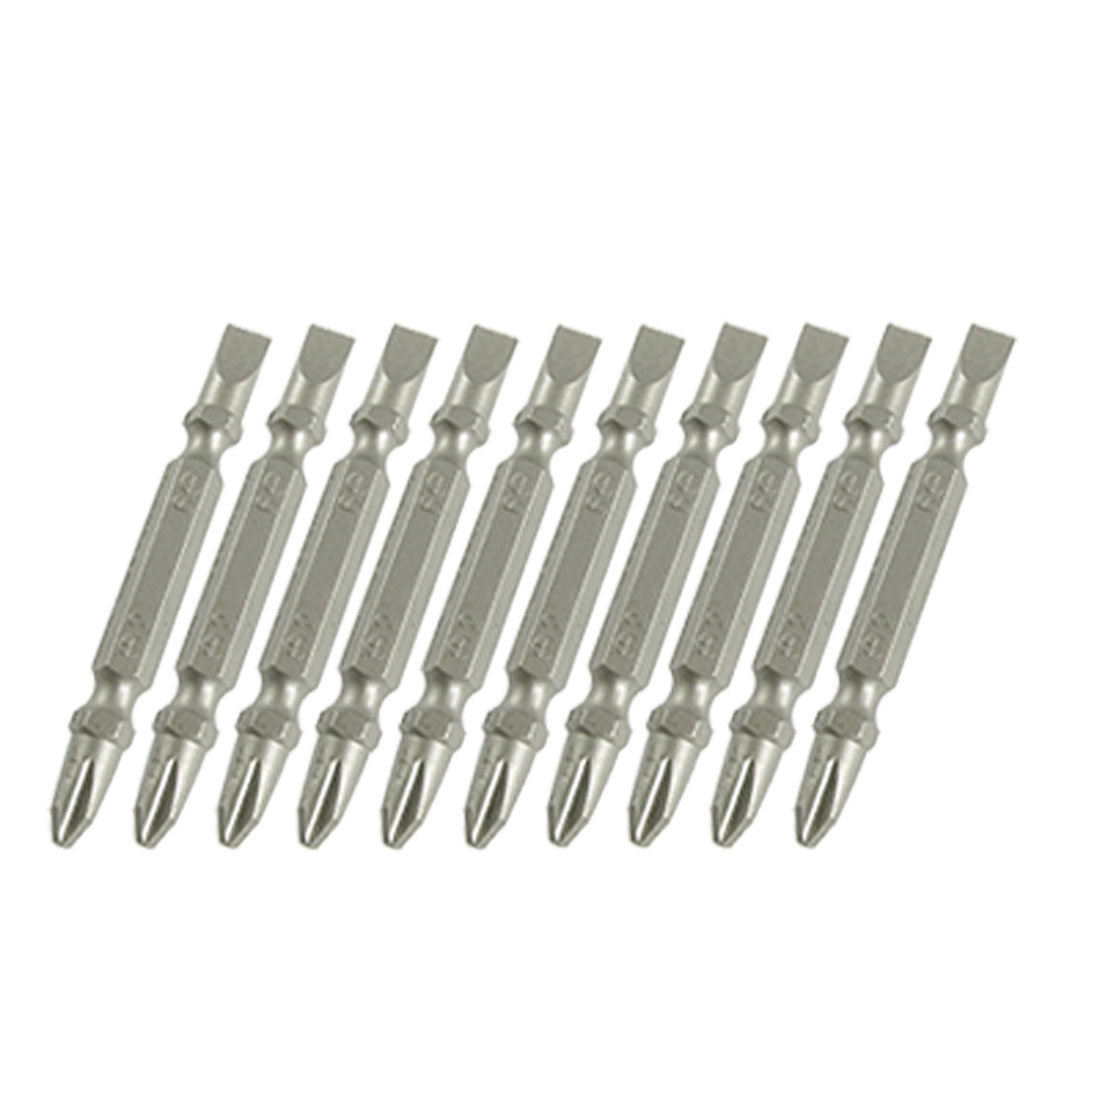 10pcs Replacement Phillips 2mm Slotted 6mm Double Ended Screwdriver Bits